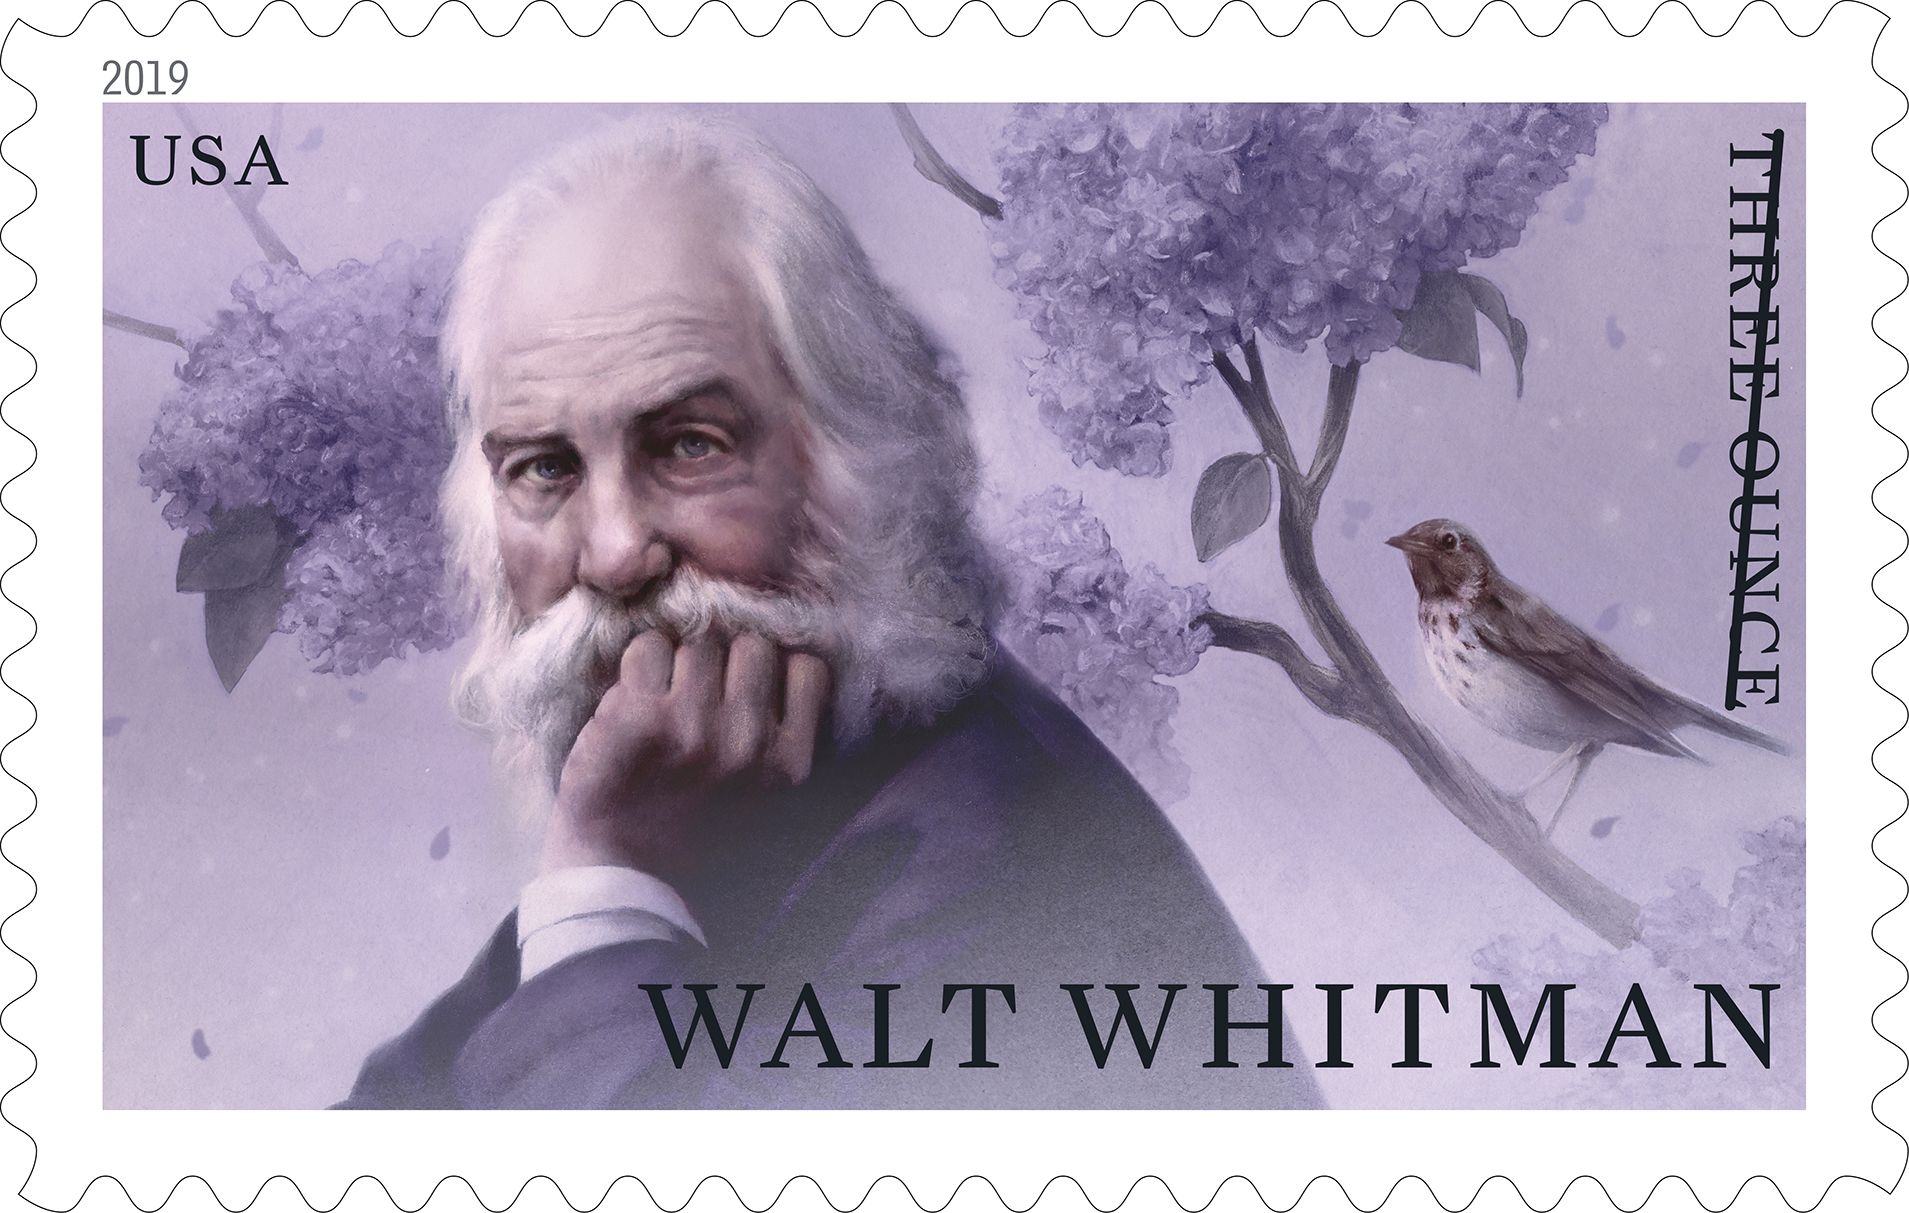 Walt Whitman - TBD 2019